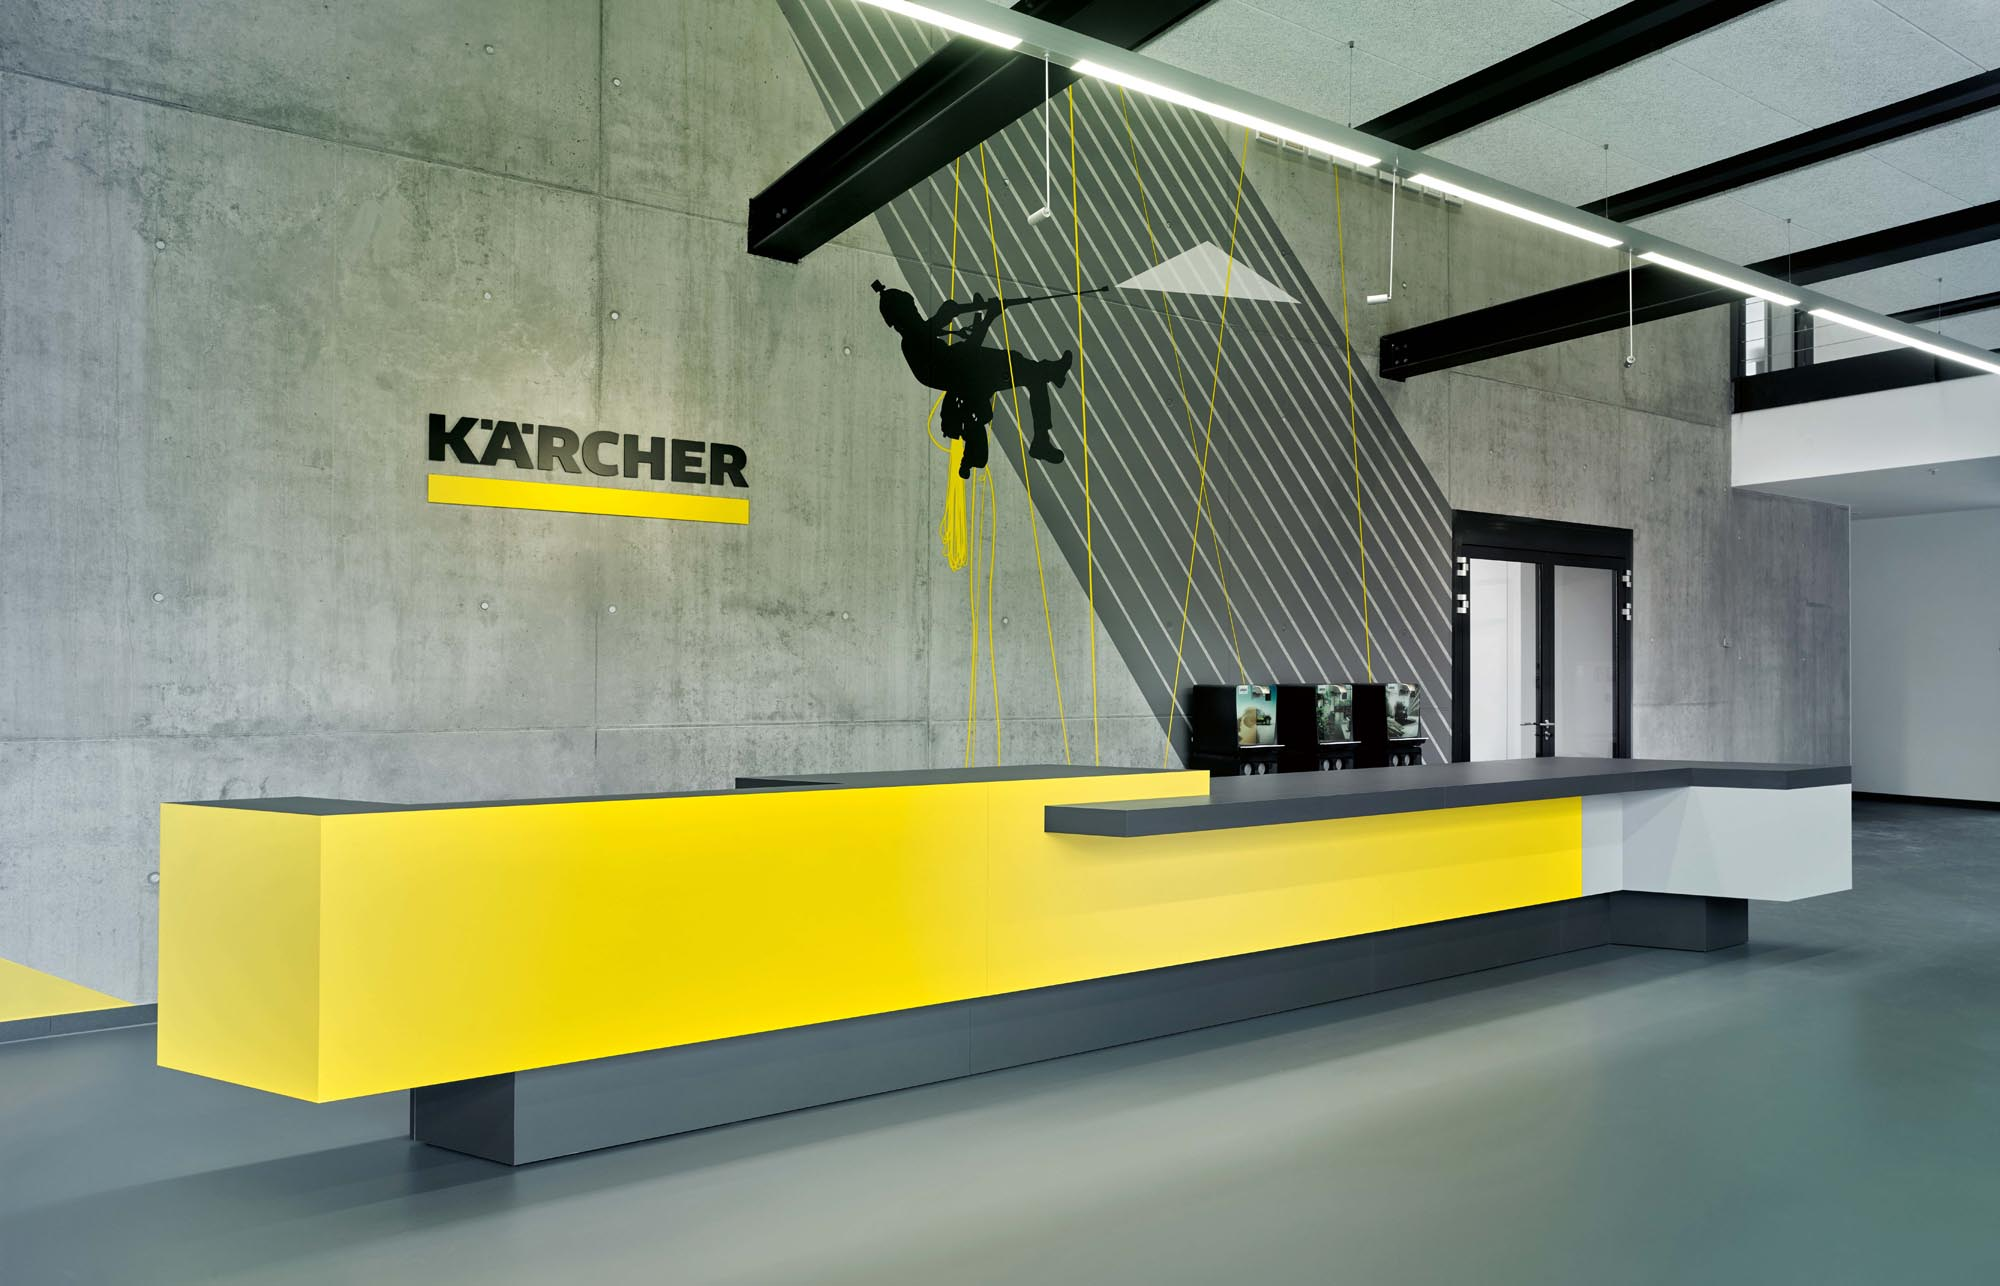 OPC 160715 0173 - Kärcher Experience Center: Kompetenzfeld, Showcases und die Gallery of Excellence